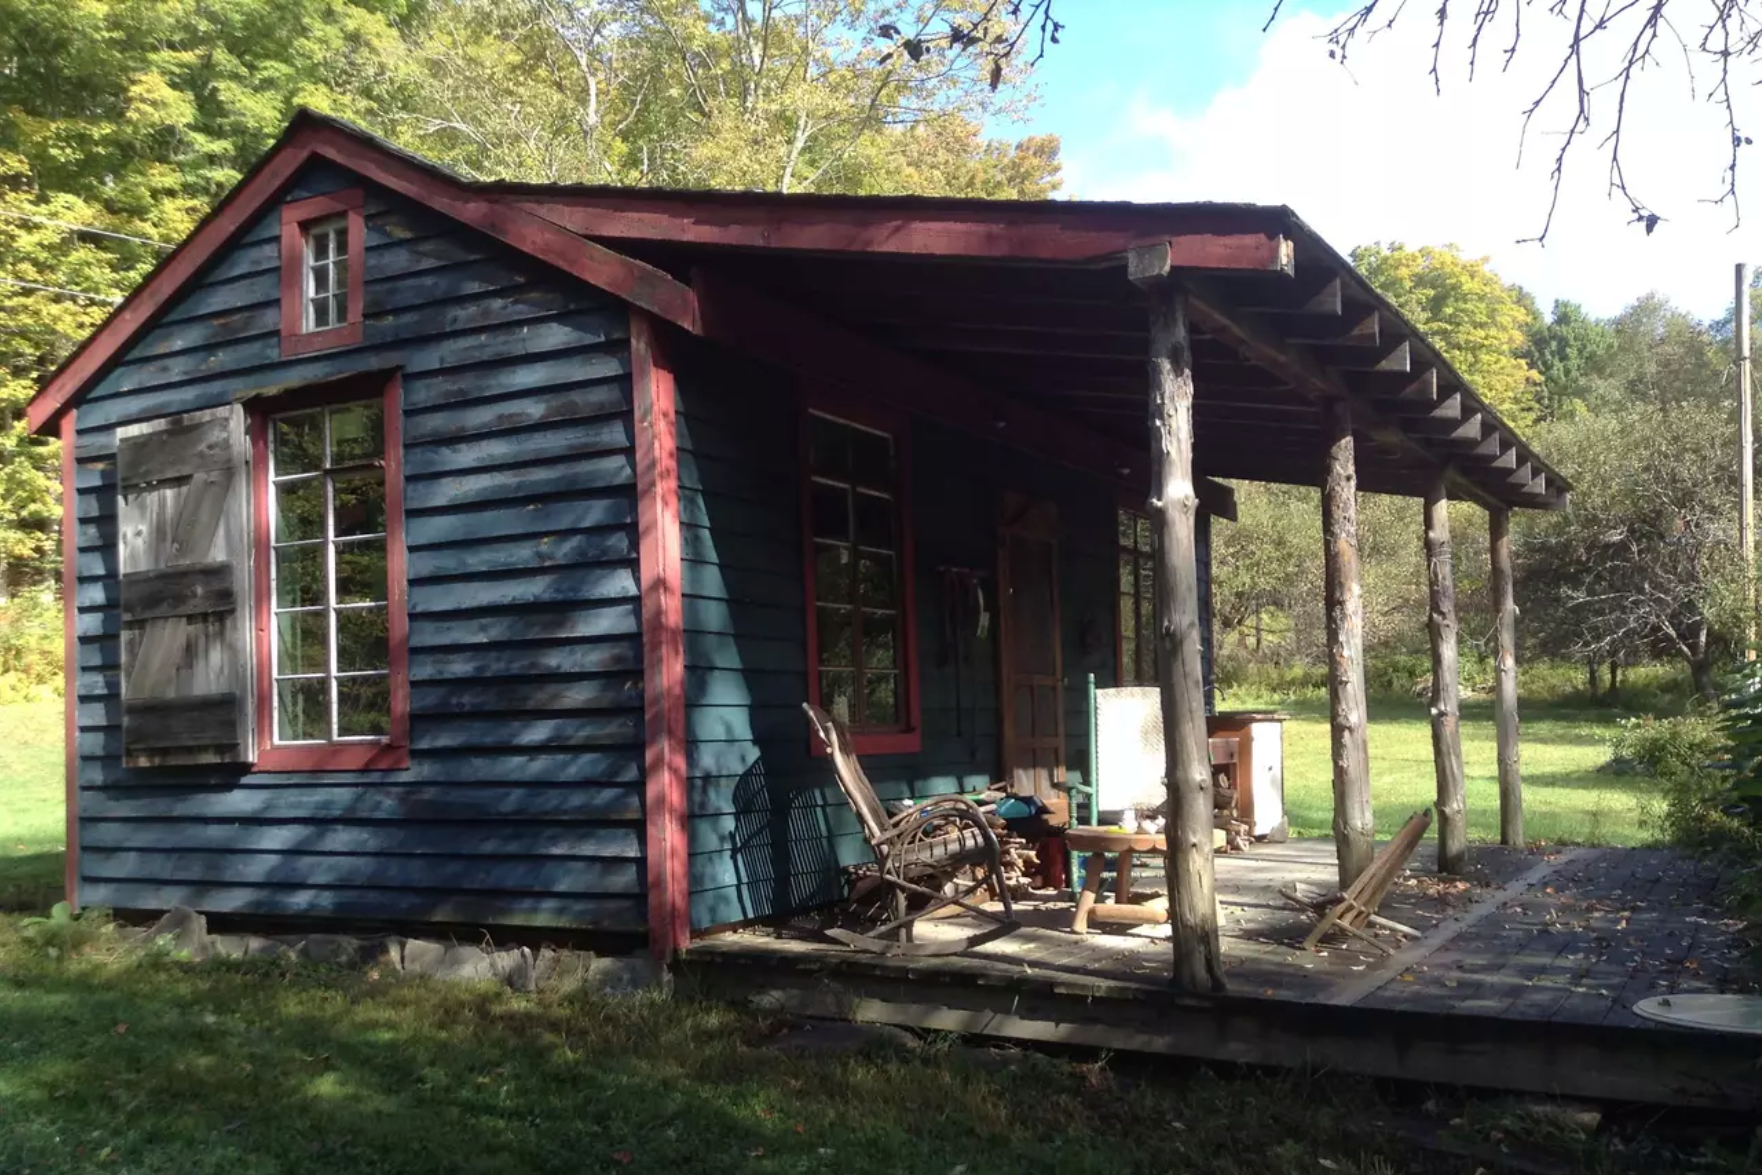 PET-FRIENDLY COZY CABIN  Jefferson, NY  Full address and info available upon booking  Click  h e re  for details on airbnb.com  Distance: about 6.5 miles / 10 minutes Capacity: 2 people